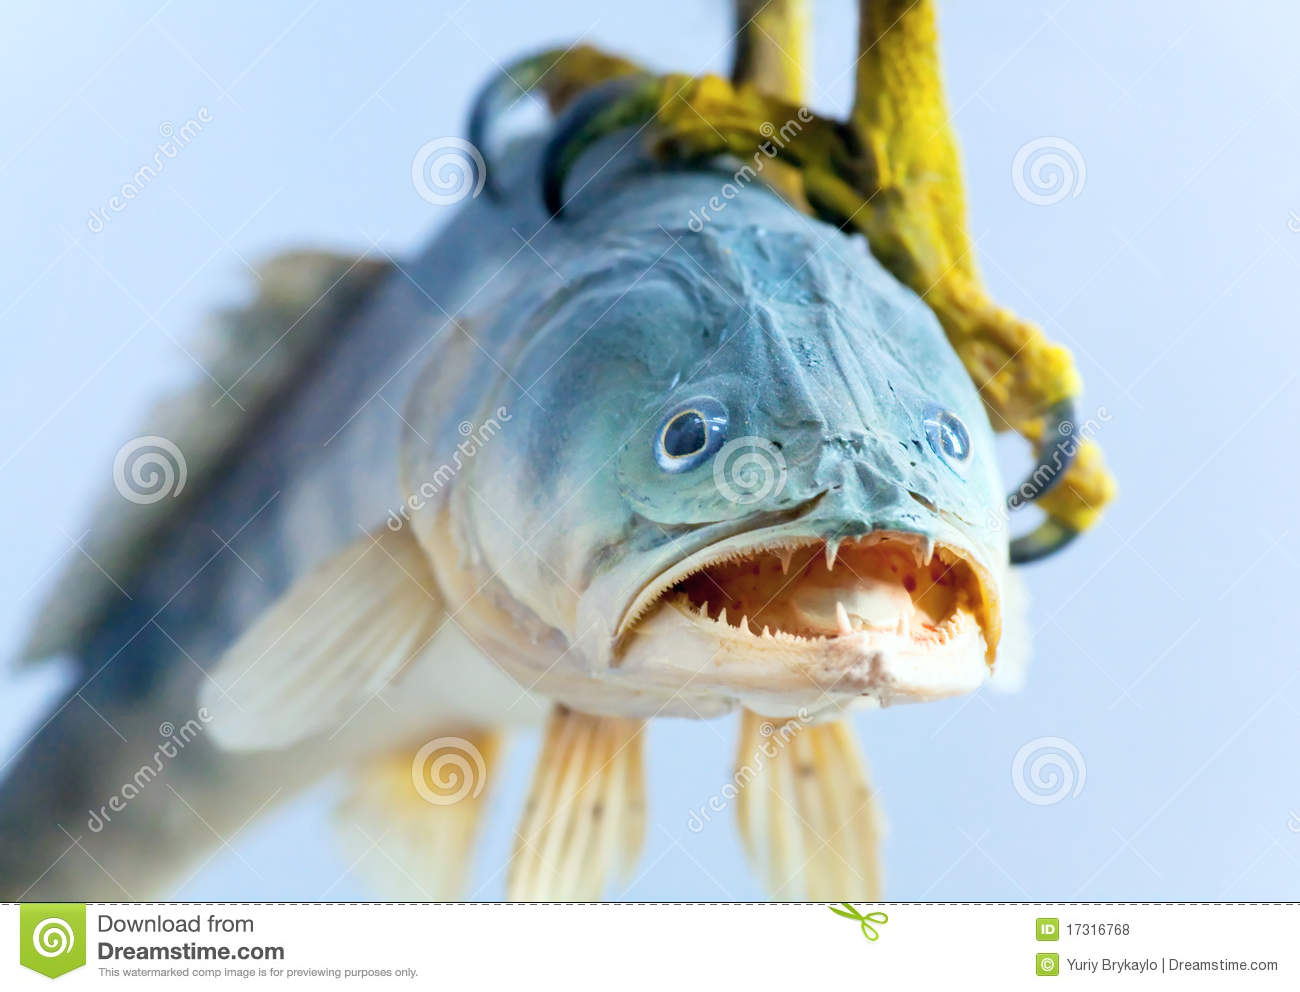 Fish in talon bird of prey royalty free stock photos for Dreaming of eating fish